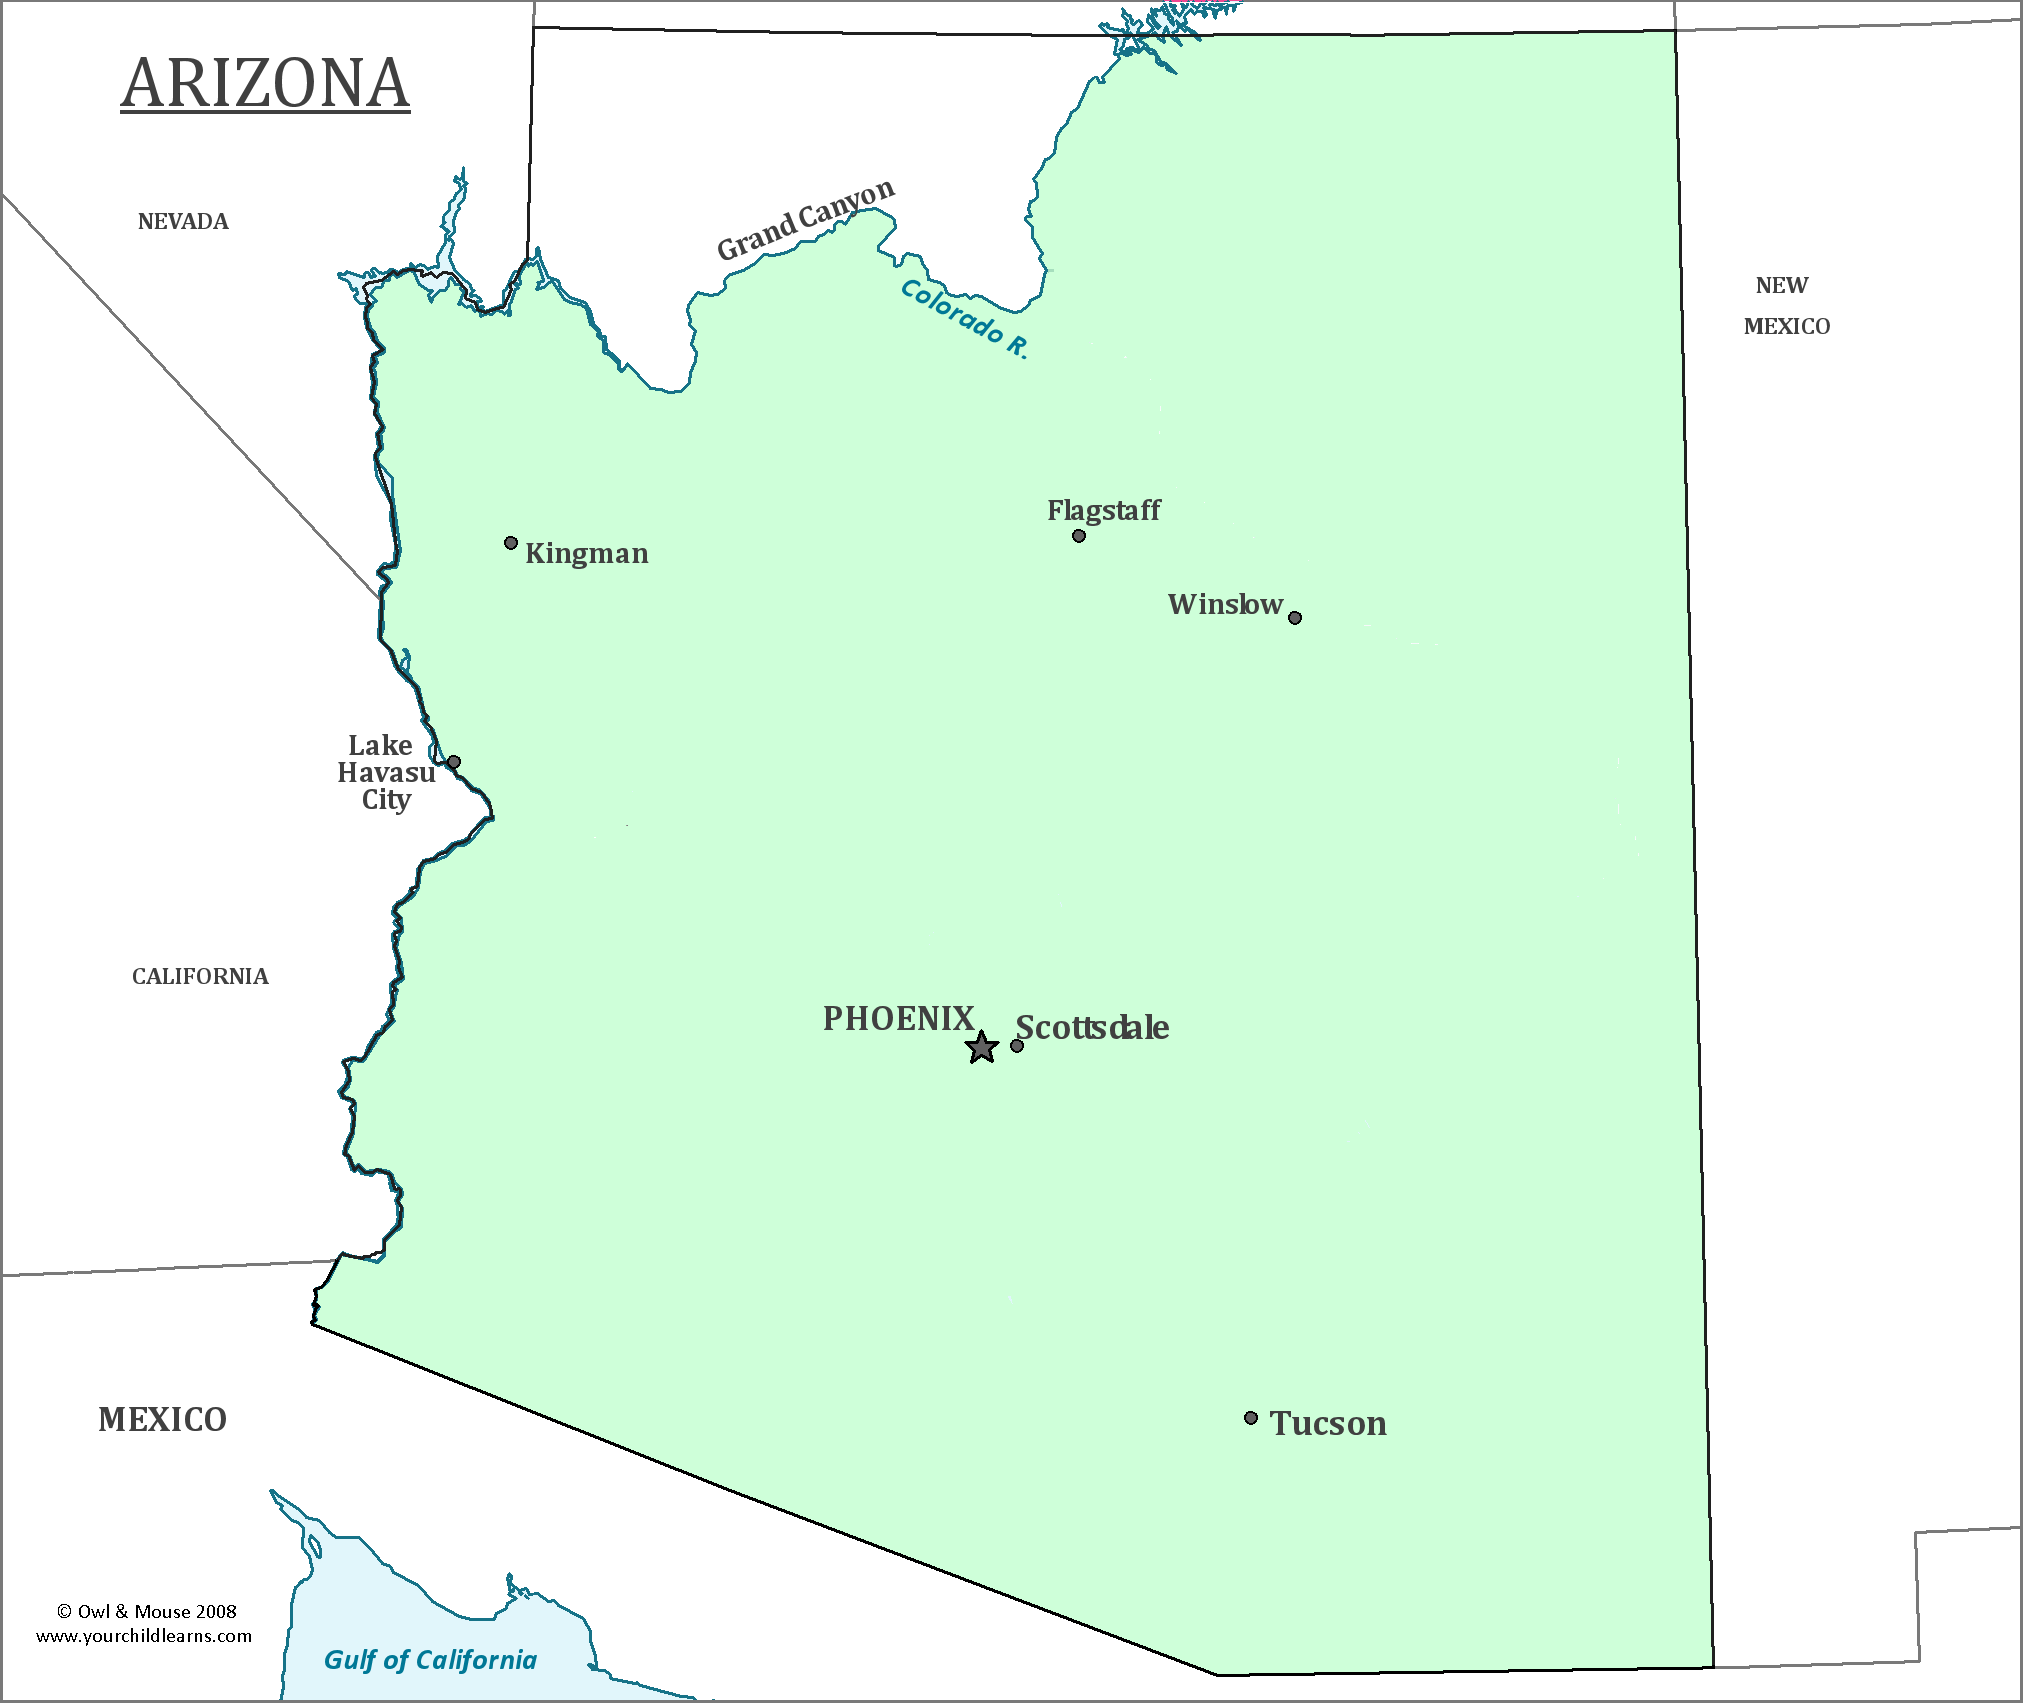 Arizona State Map Map Of Arizona And Information About The State - City map of arizona